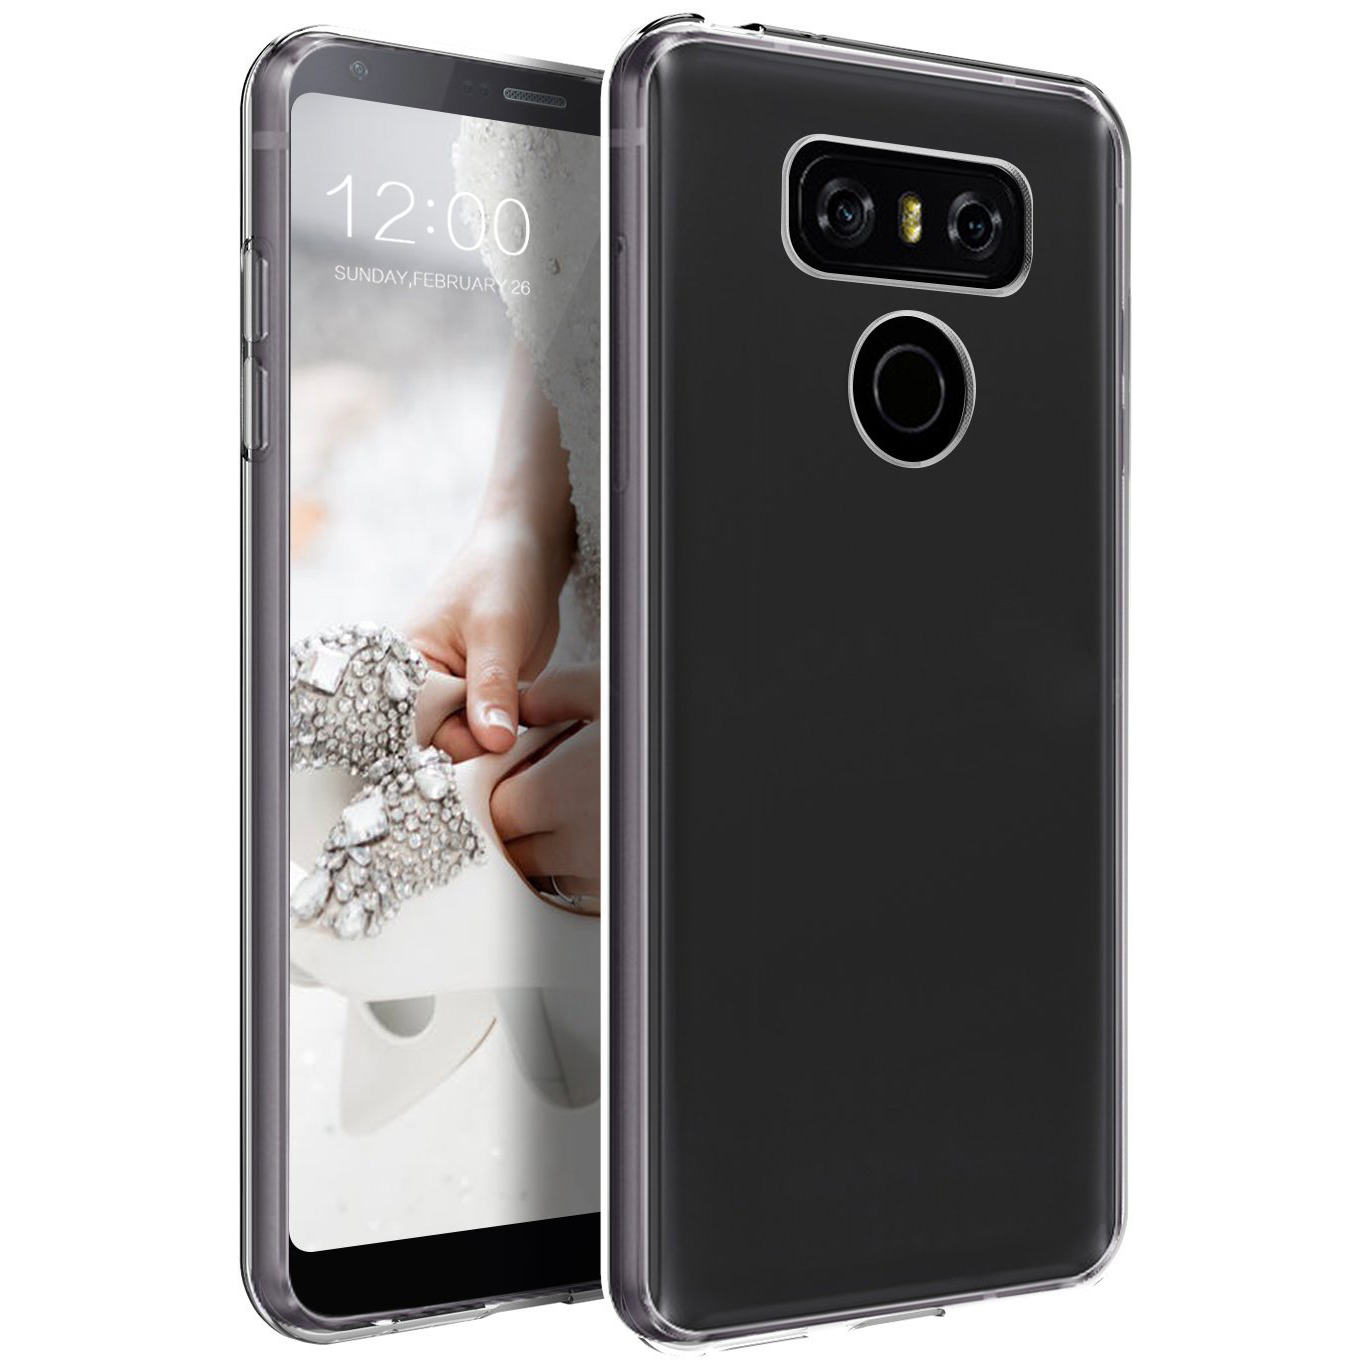 LG G6 TPU Case, Slim & Flexible Anti-shock Crystal Silicone Protective TPU Gel Skin Case Cover [Clear] with Travel Wallet Phone Stand